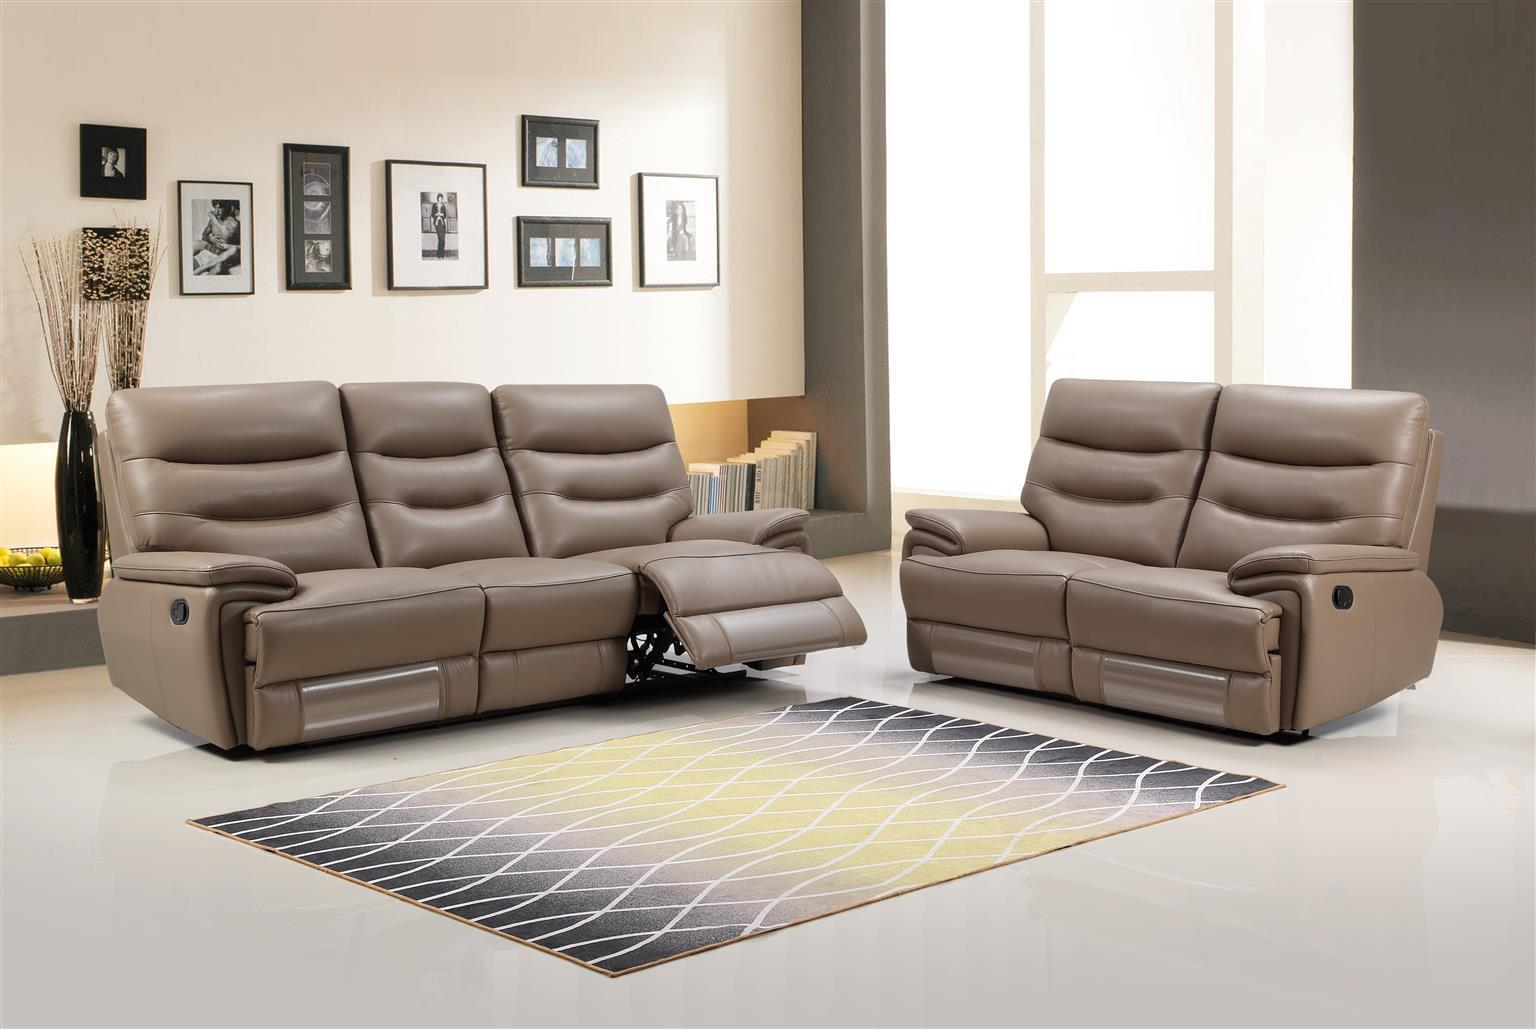 3 PIECE EXPRESSO LOUNGE SUITE FOR ONLY R 18 999 BRAND NEW !